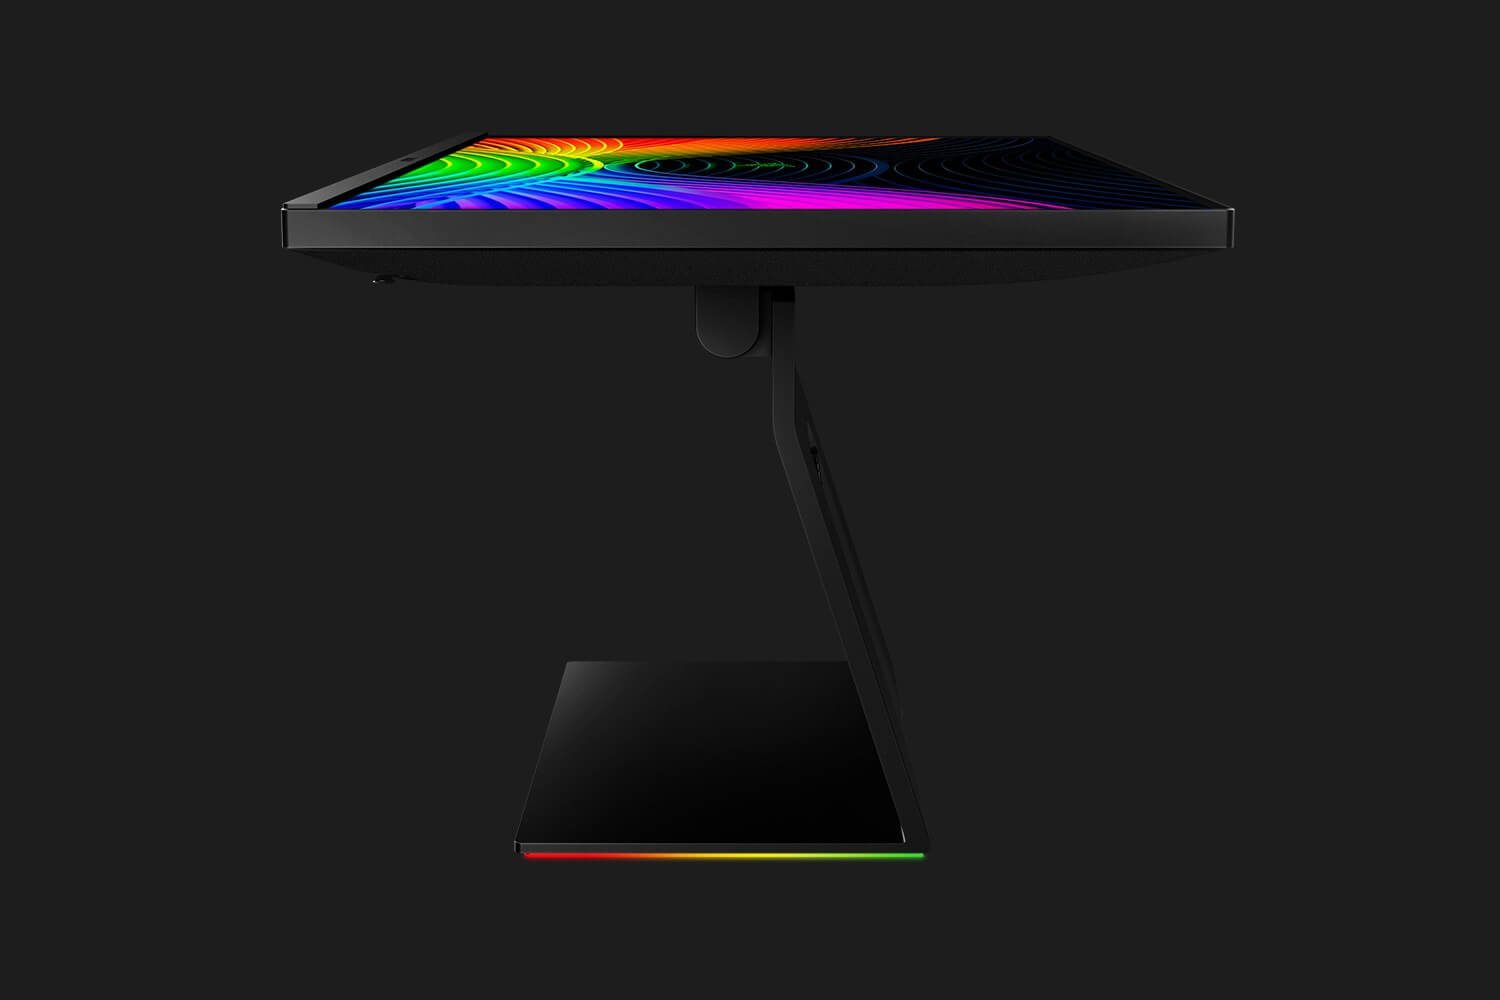 Razer's 144Hz 'Raptor 27' gaming monitor is finally available for purchase